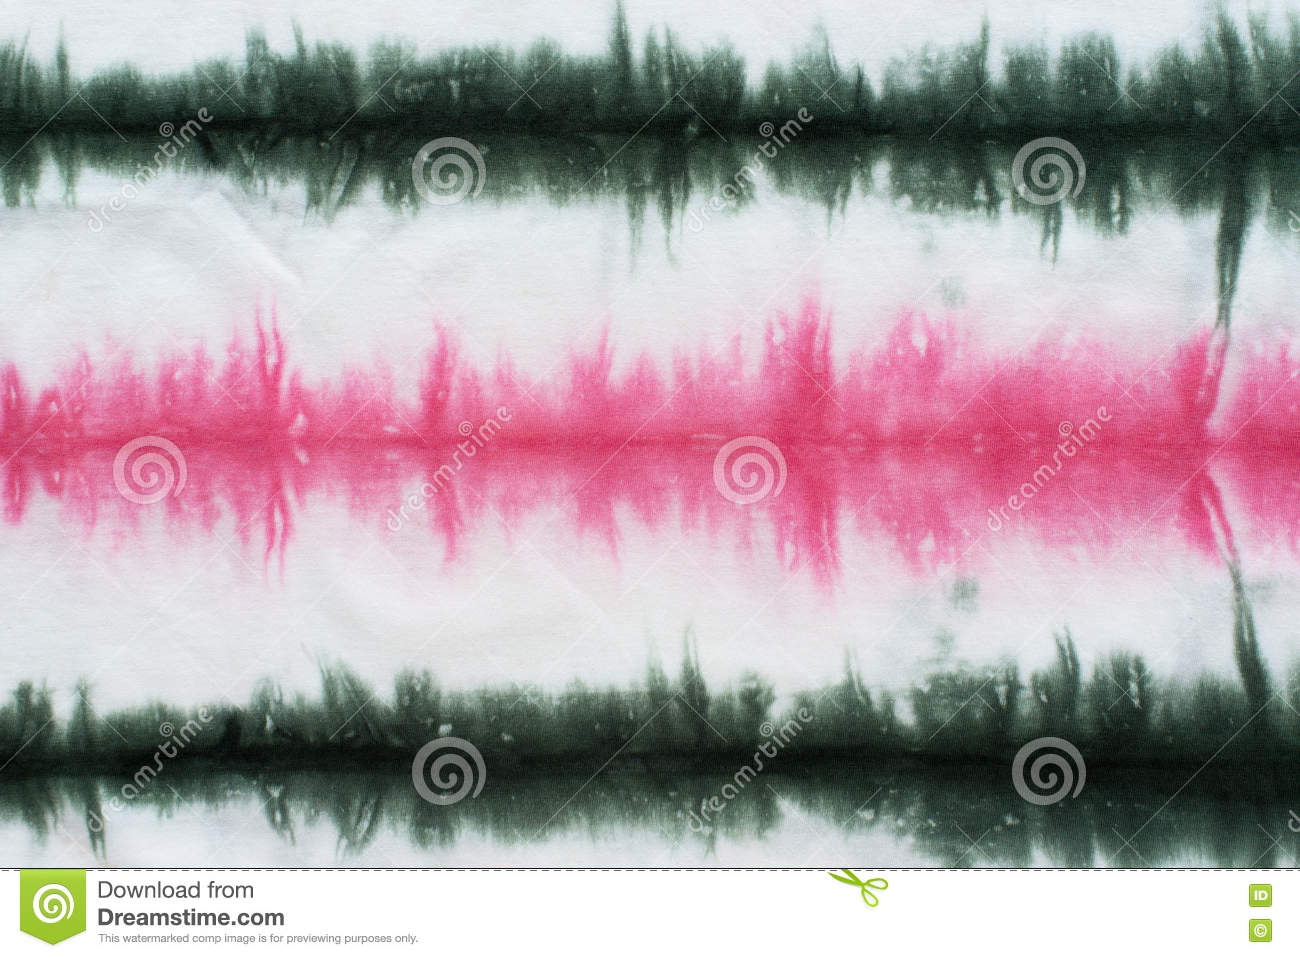 Striped tie dye pattern abstract background.